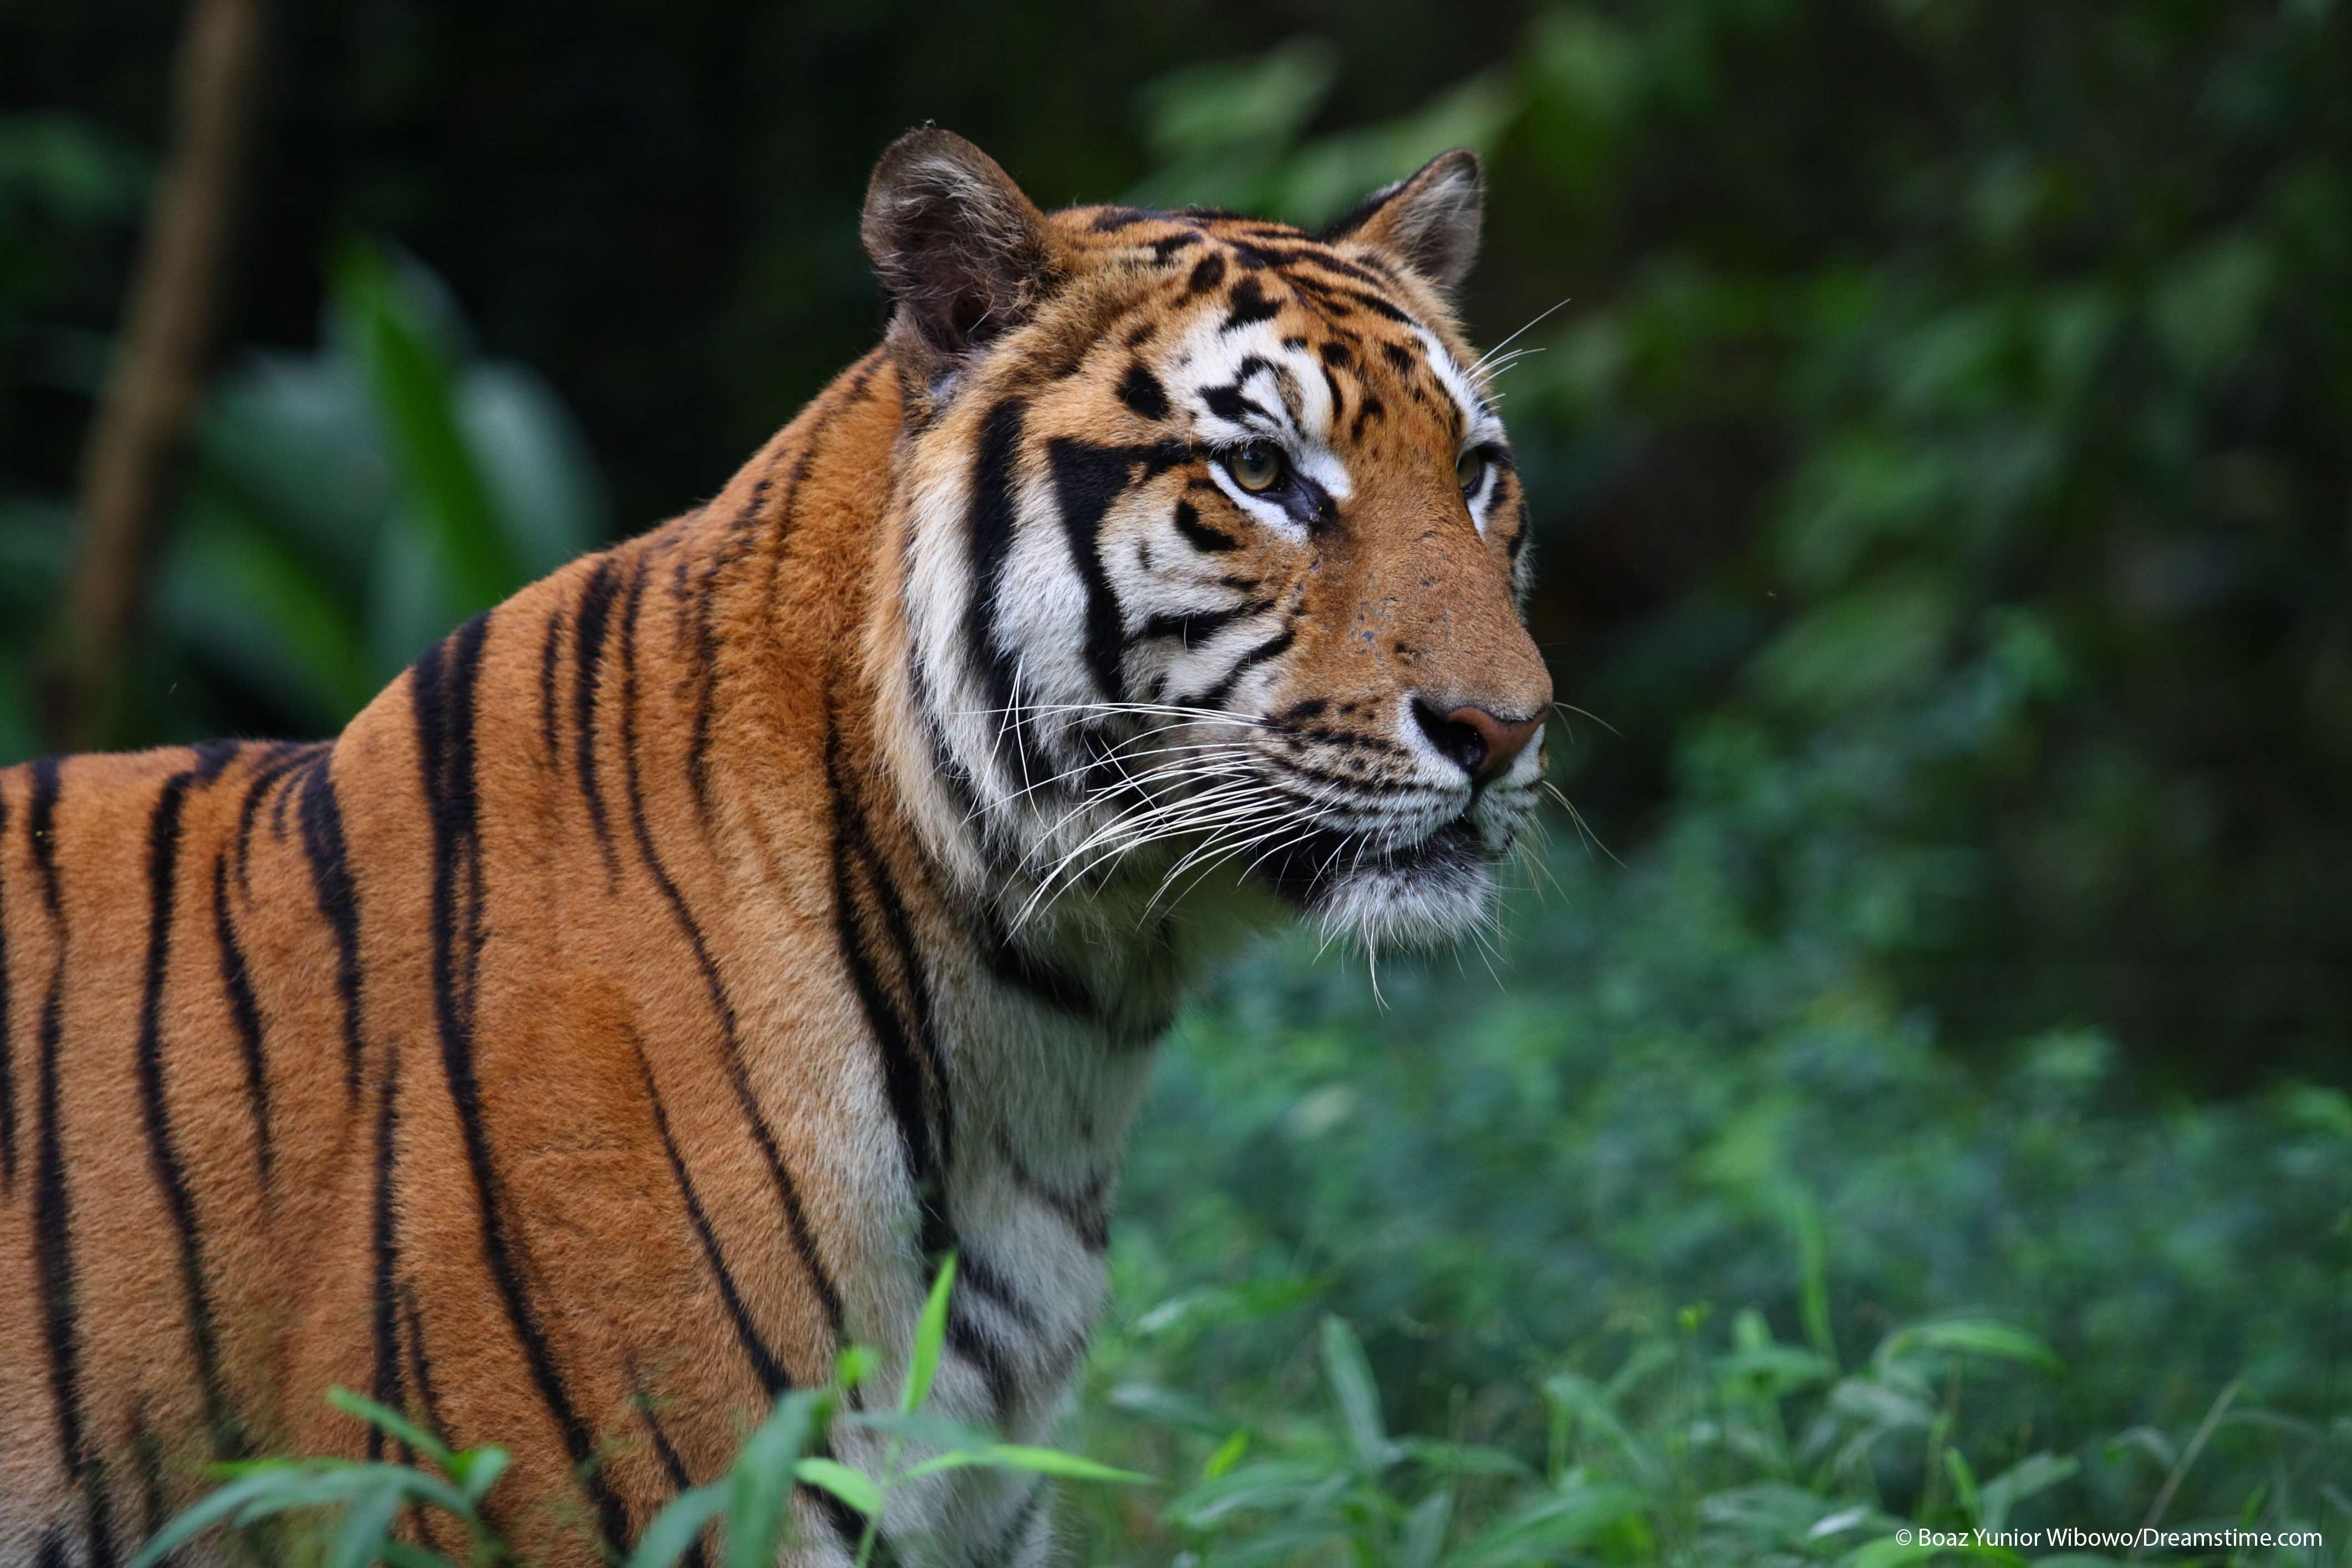 Only about 3,000-4,000 tigers remain in the wild. Photo by Boaz Yunior Wibowo/Dreamstime.